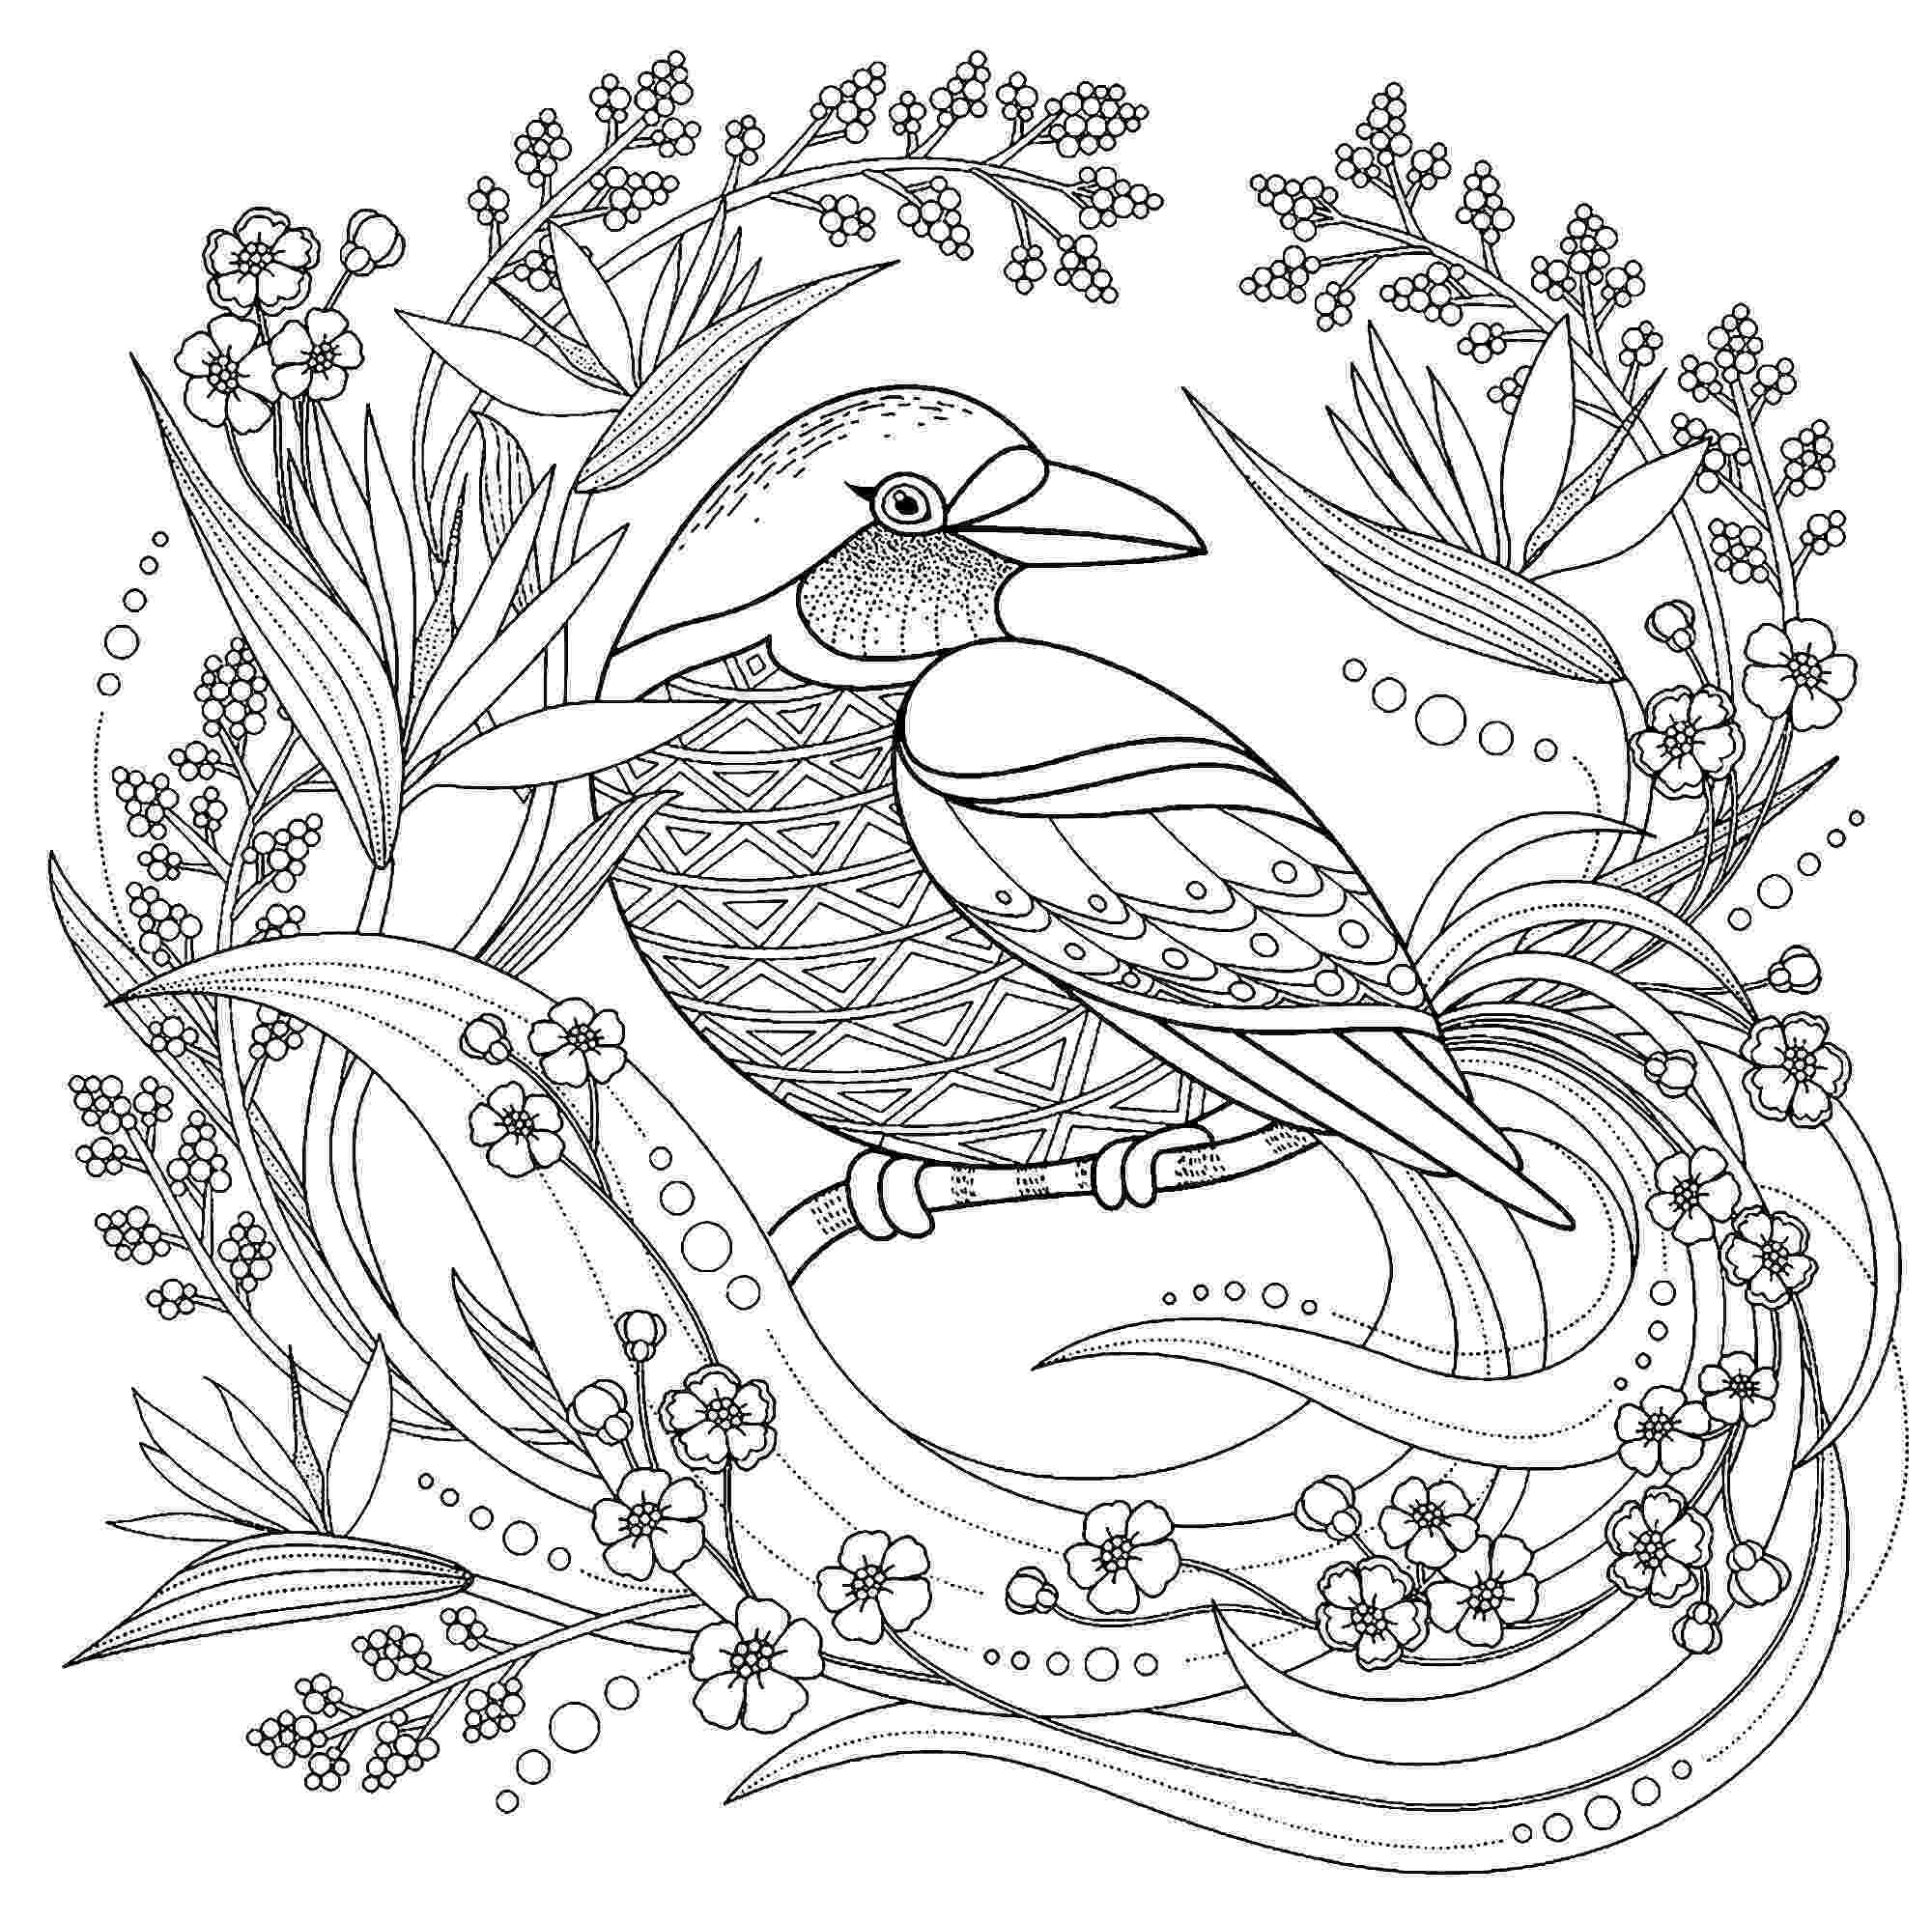 free coloring pages birds printable advanced bird coloring pages for adults free birds pages free coloring